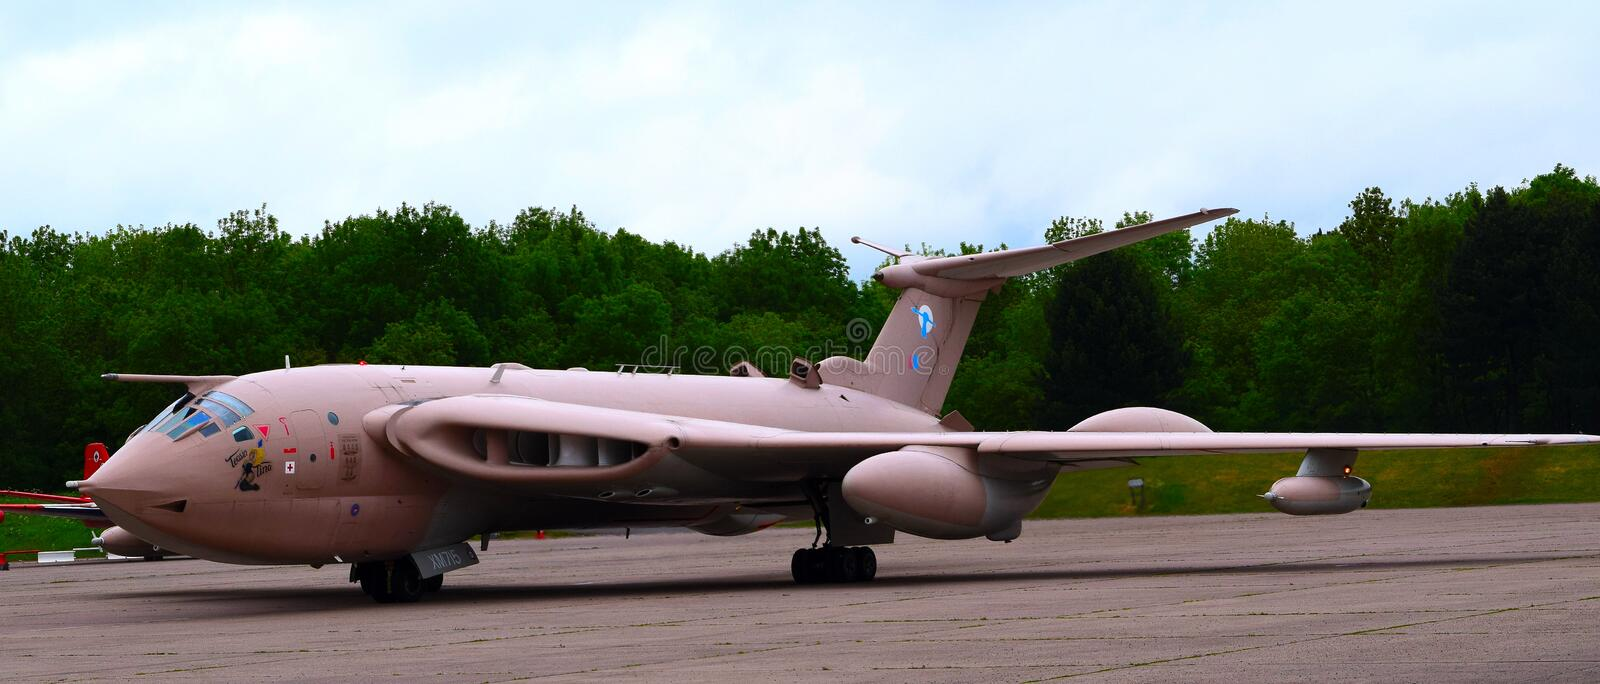 Handley Page Victor royalty free stock image